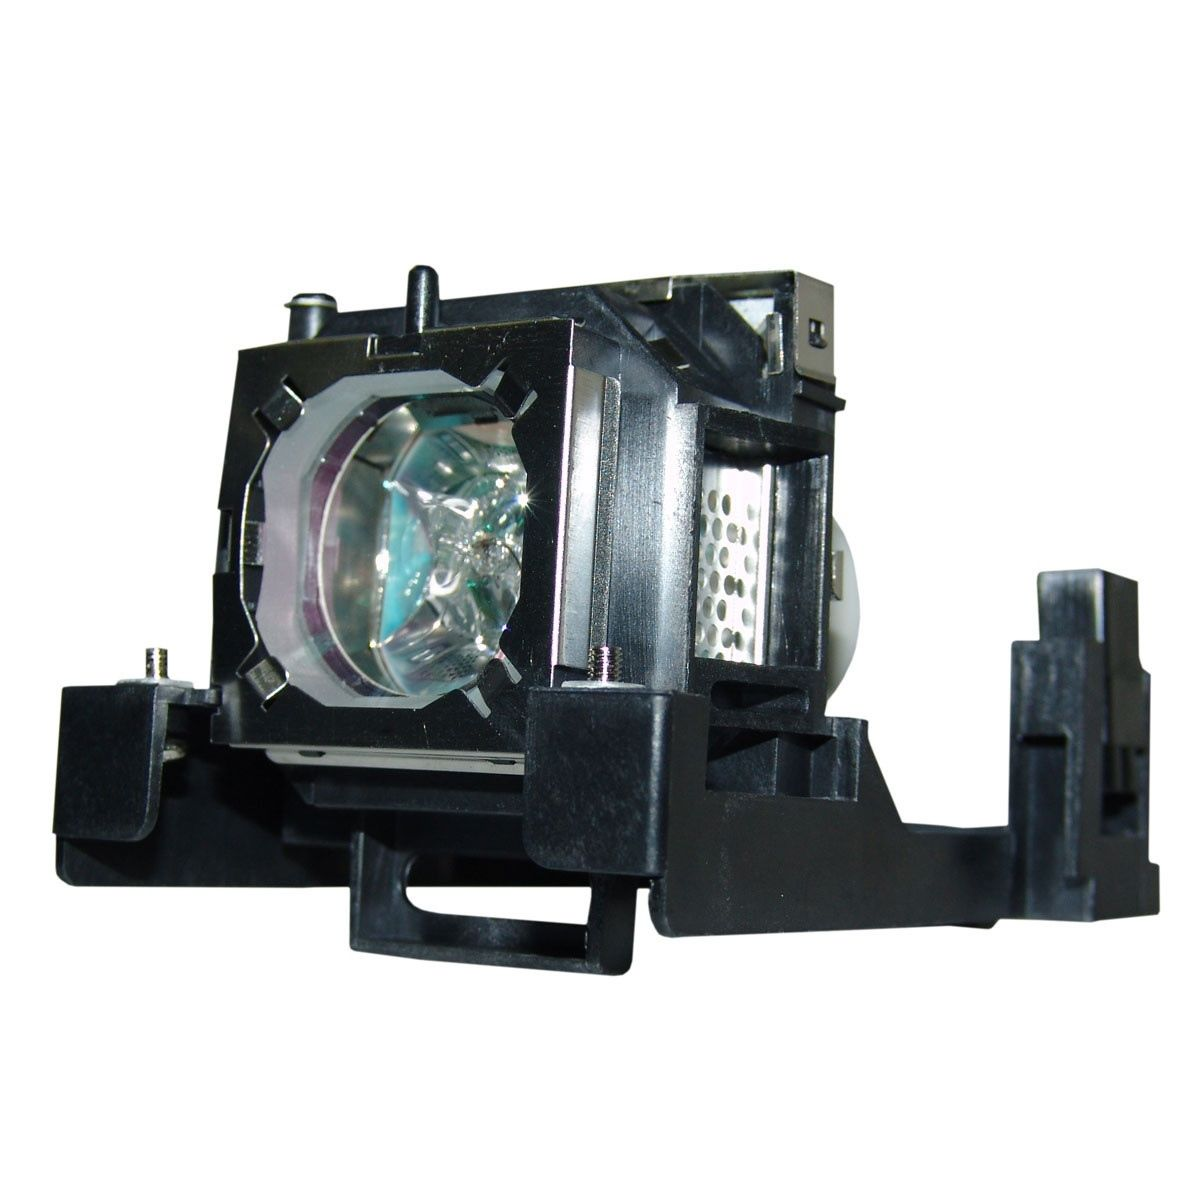 projector Lamp Bulb ET-LAT100 ETLAT100 LAT100 for Panasonic PT-TW230 PT-TW231R PT-TW230EA PT-TW231REA with housing projector lamp bulb et lab80 etlab80 for panasonic pt lb75 pt lb80 pt lw80ntu pt lb75ea pt lb75nt with housing